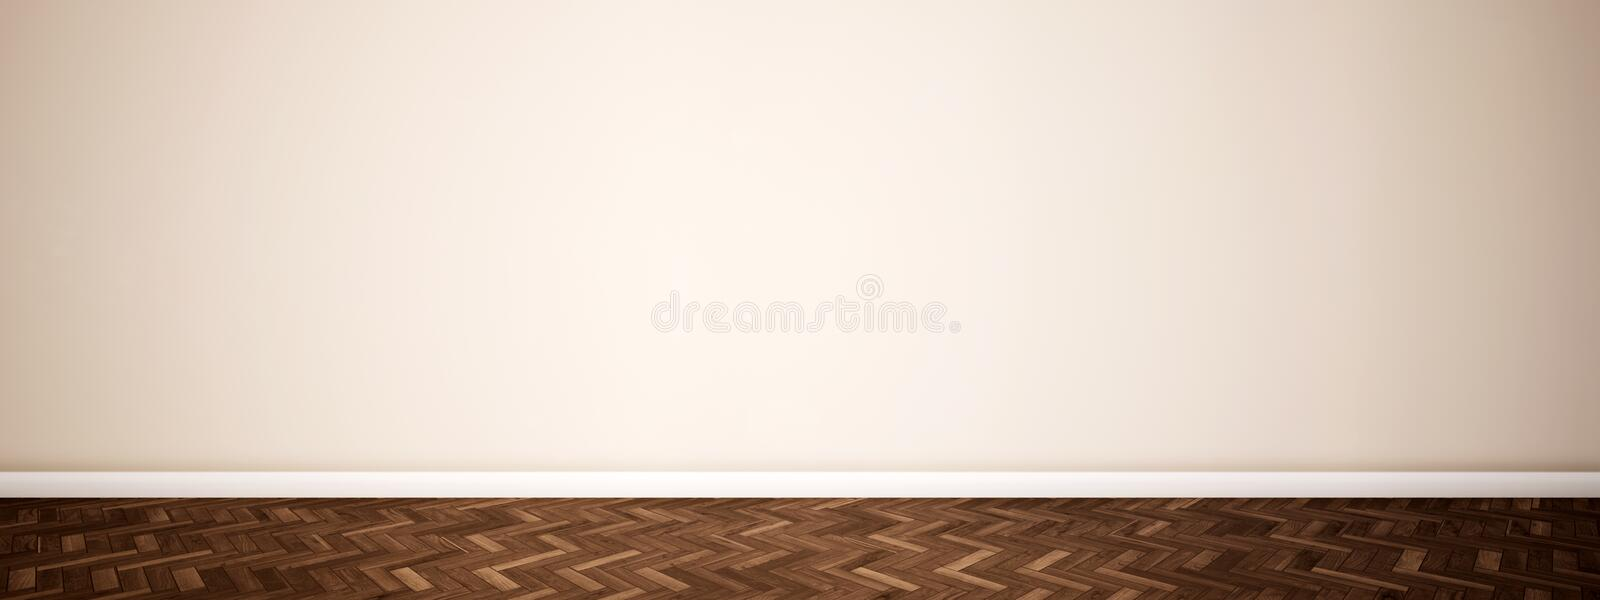 Vintage or grungy brown background of natural wood 库存例证